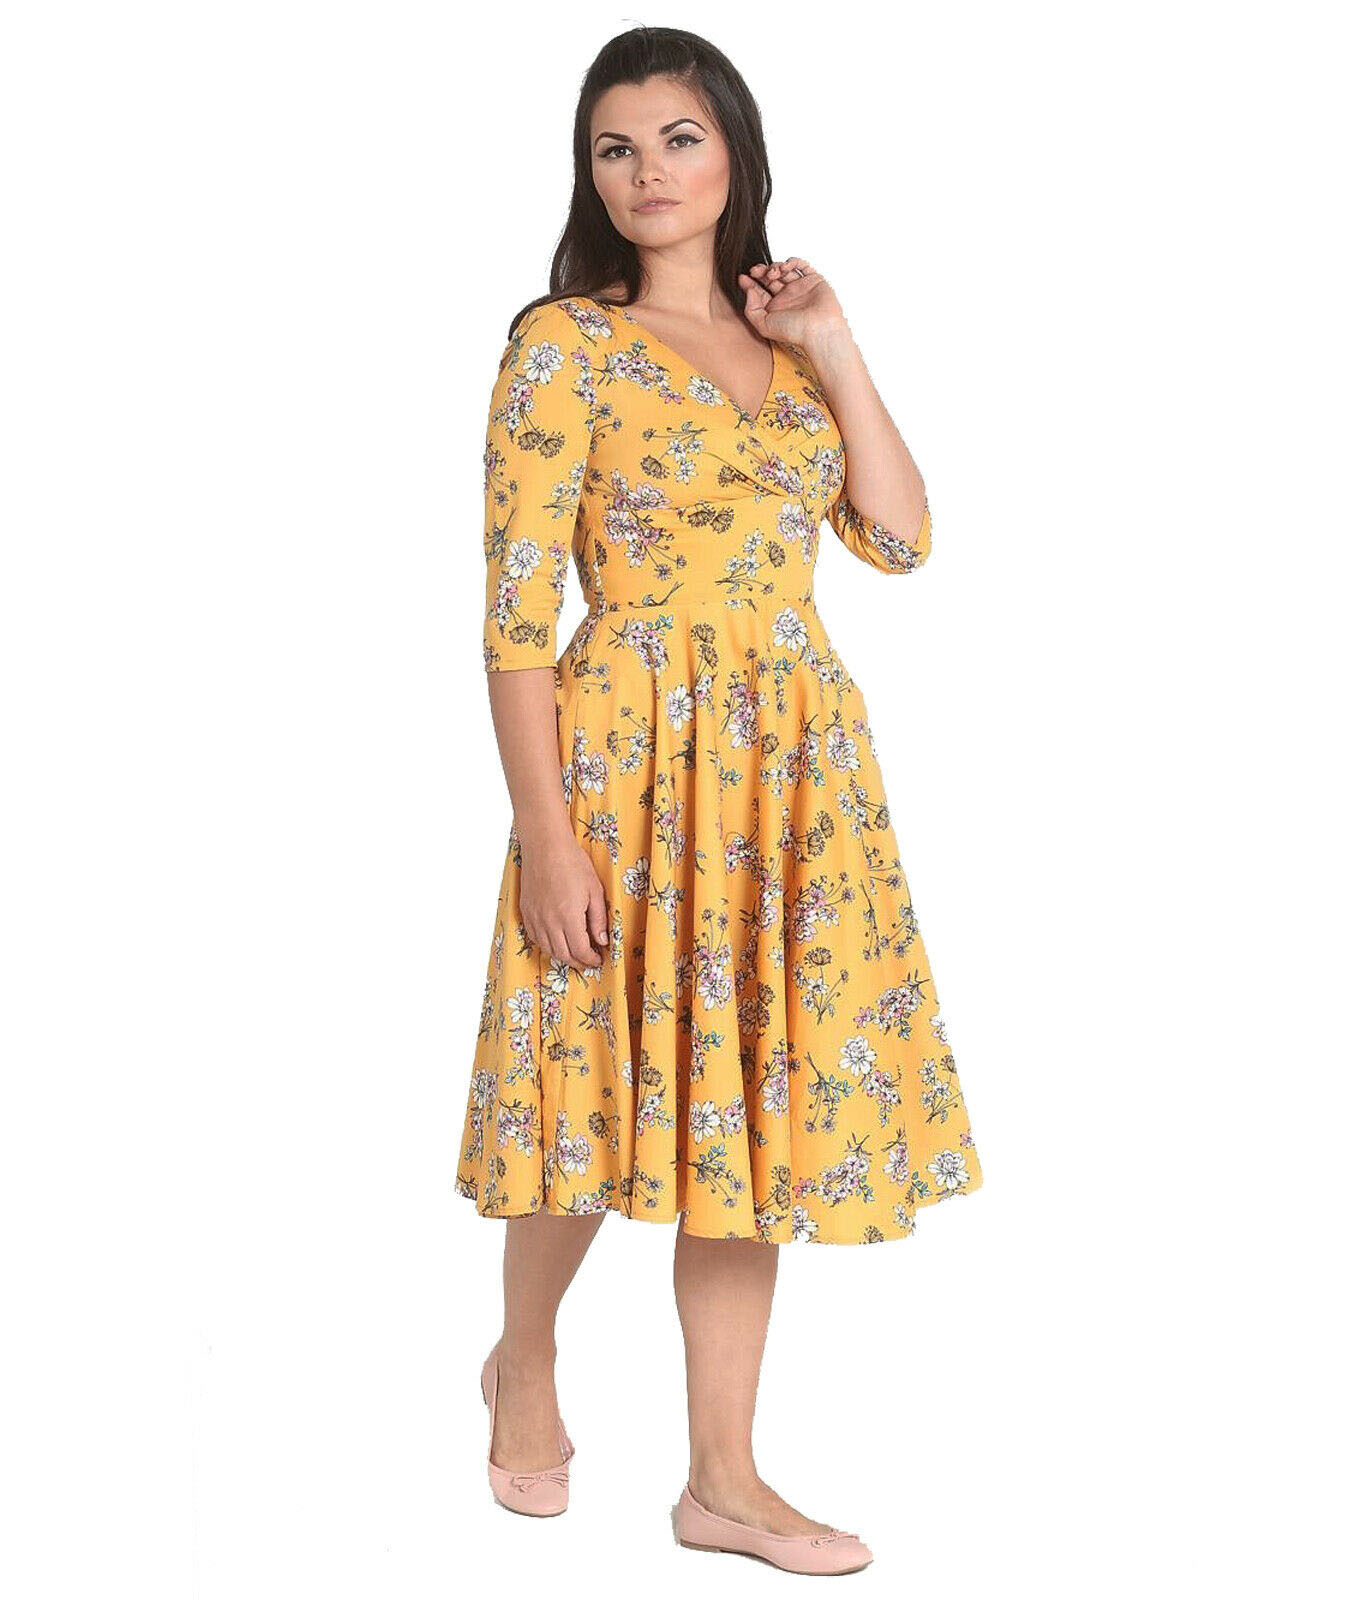 Hell-Bunny-40s-50s-Pin-Up-Vintage-Dress-MURIEL-Flowers-Yellow-All-Sizes thumbnail 7